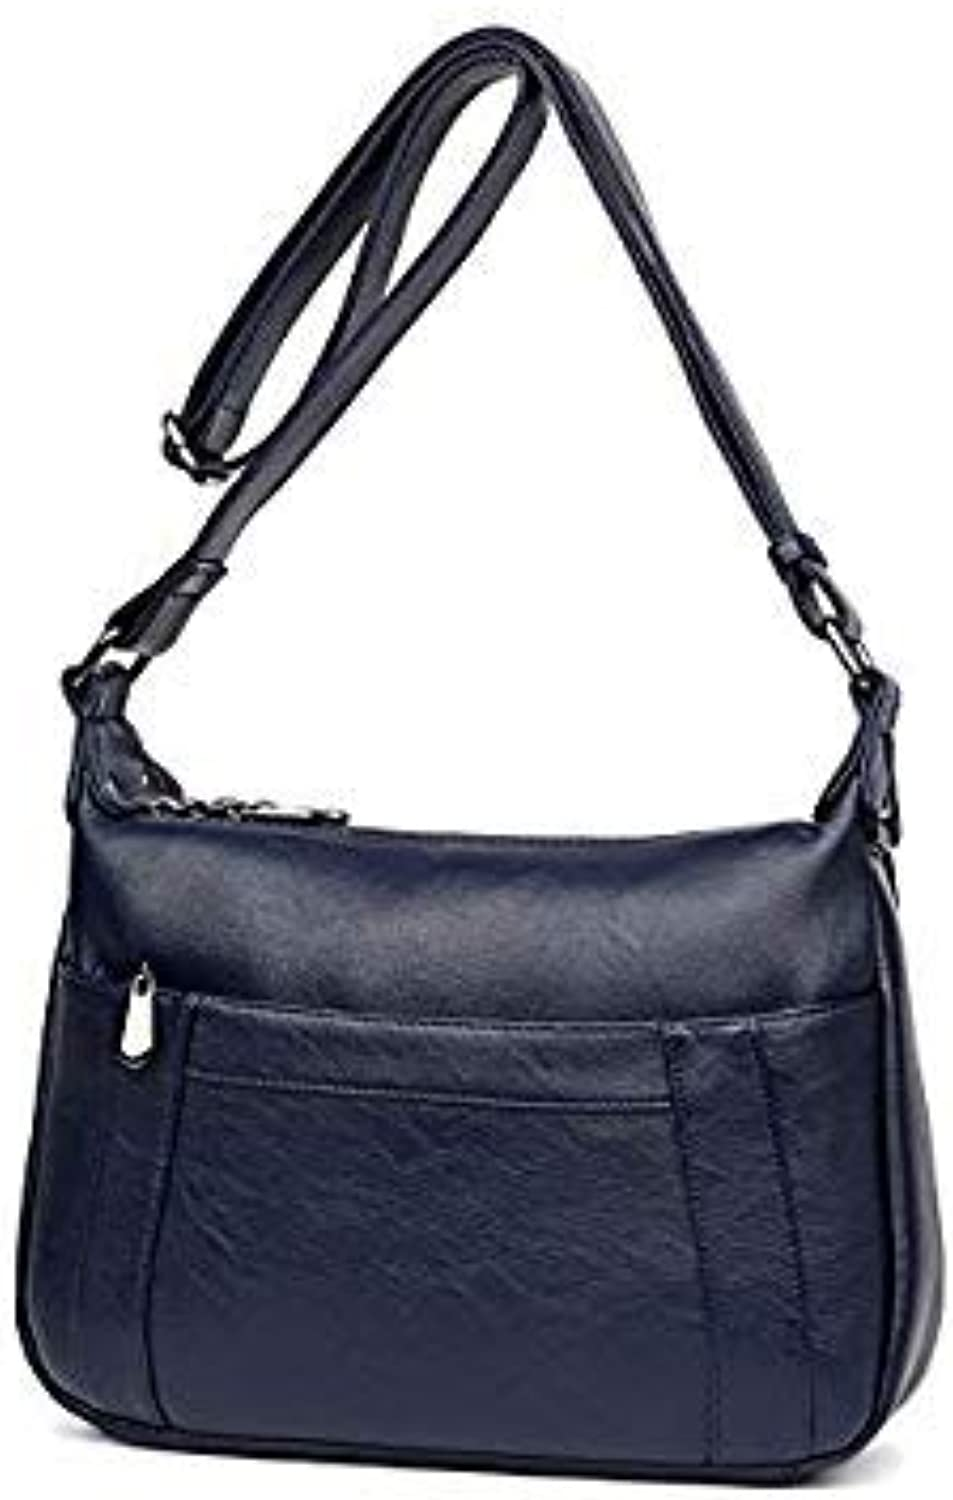 Bloomerang New Front Pocket High Quality Women Crossbody Bags Female Handbags Women Bag Handbags Solid Leather Messenger Shoulder Bag sac color blueee